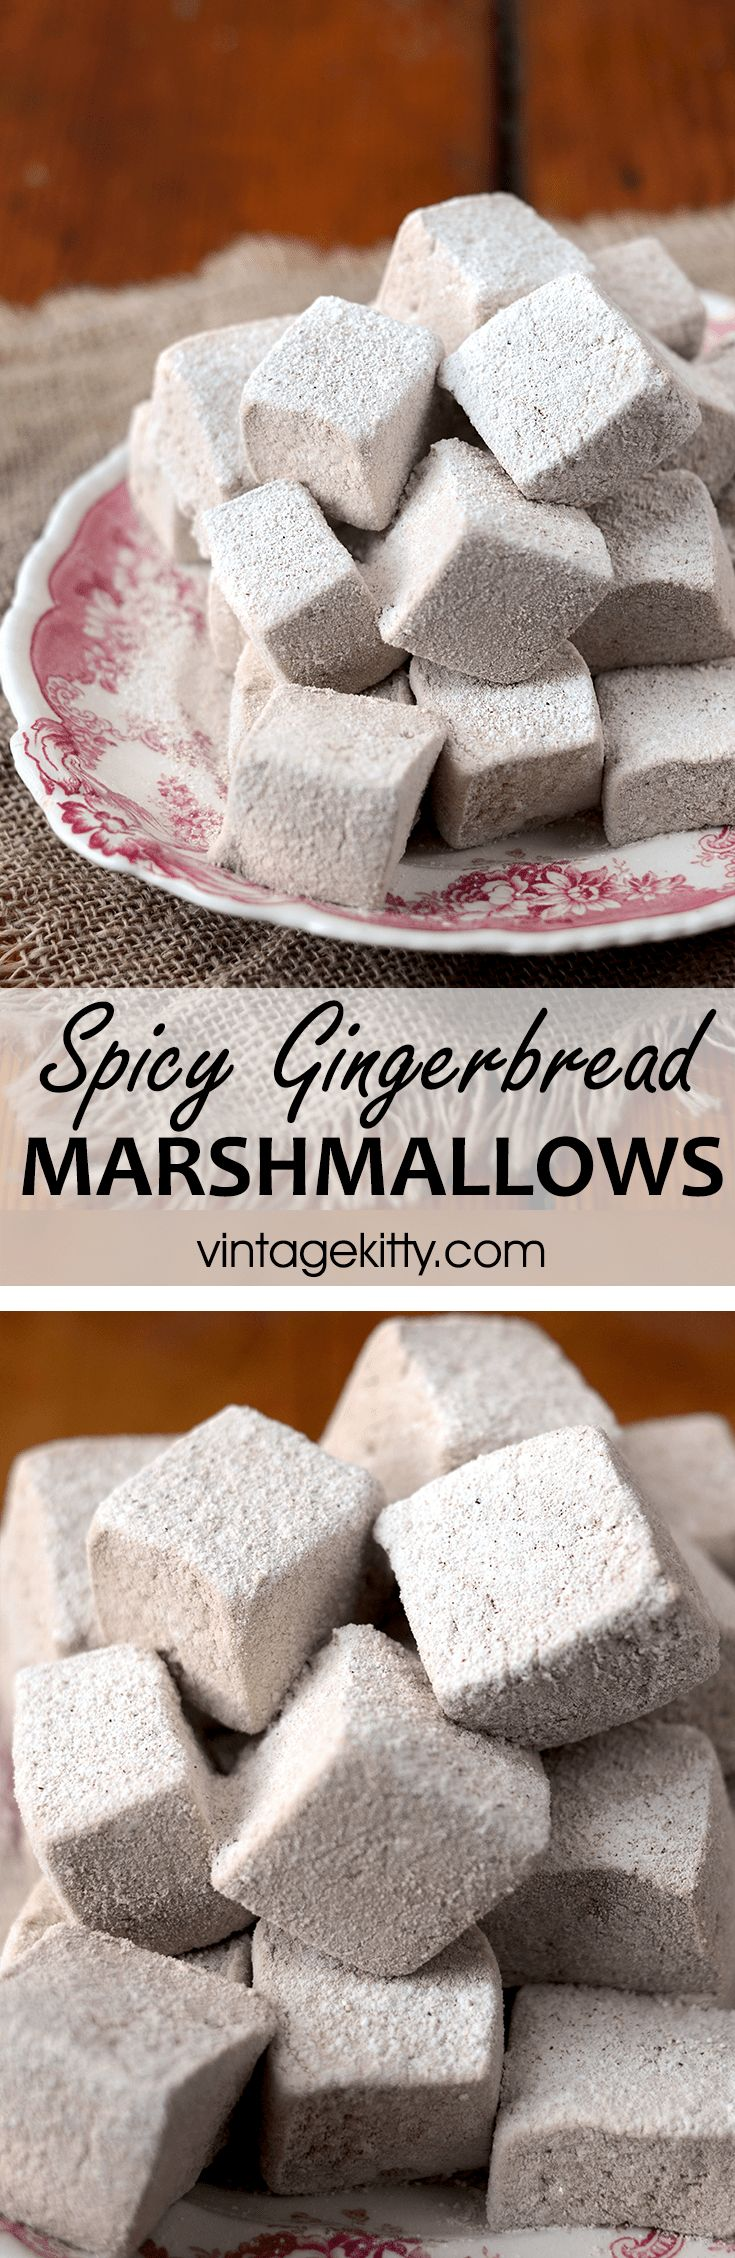 Spicy Gingerbread Marshmallows - Vintage Kitty